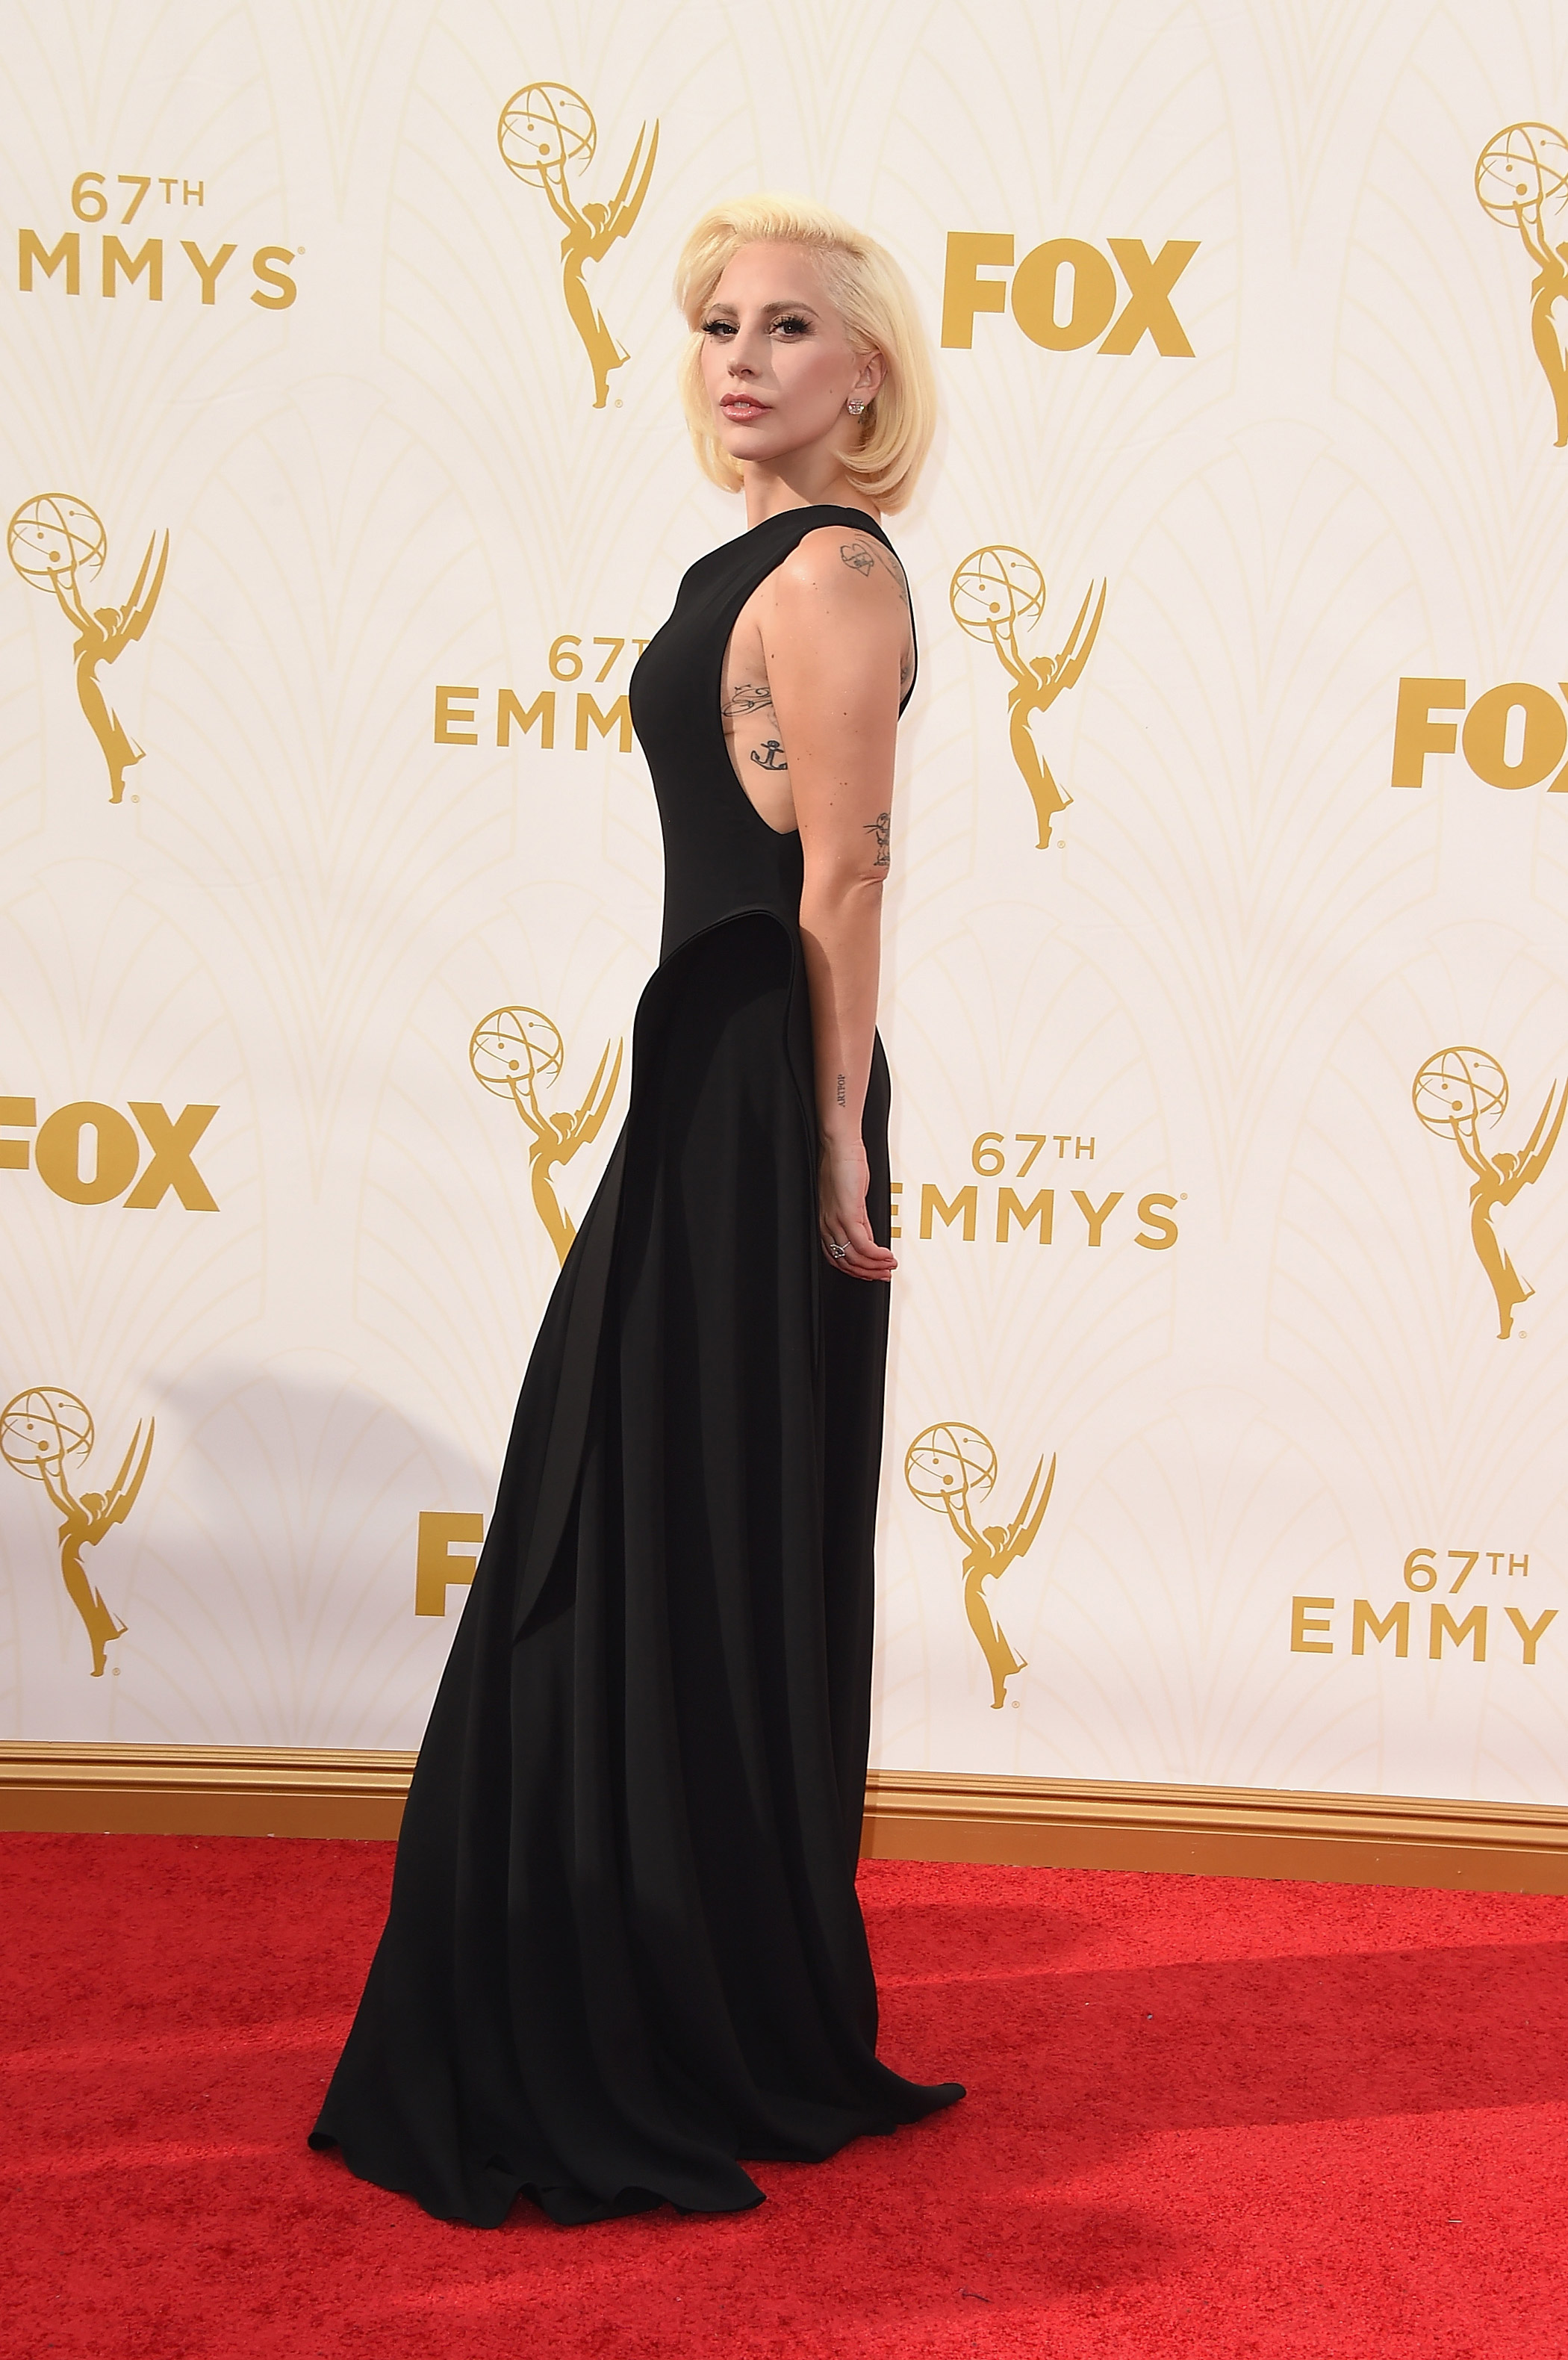 Lady Gaga at the 67th Emmy Award on Sept. 20, 2015 in Los Angeles.